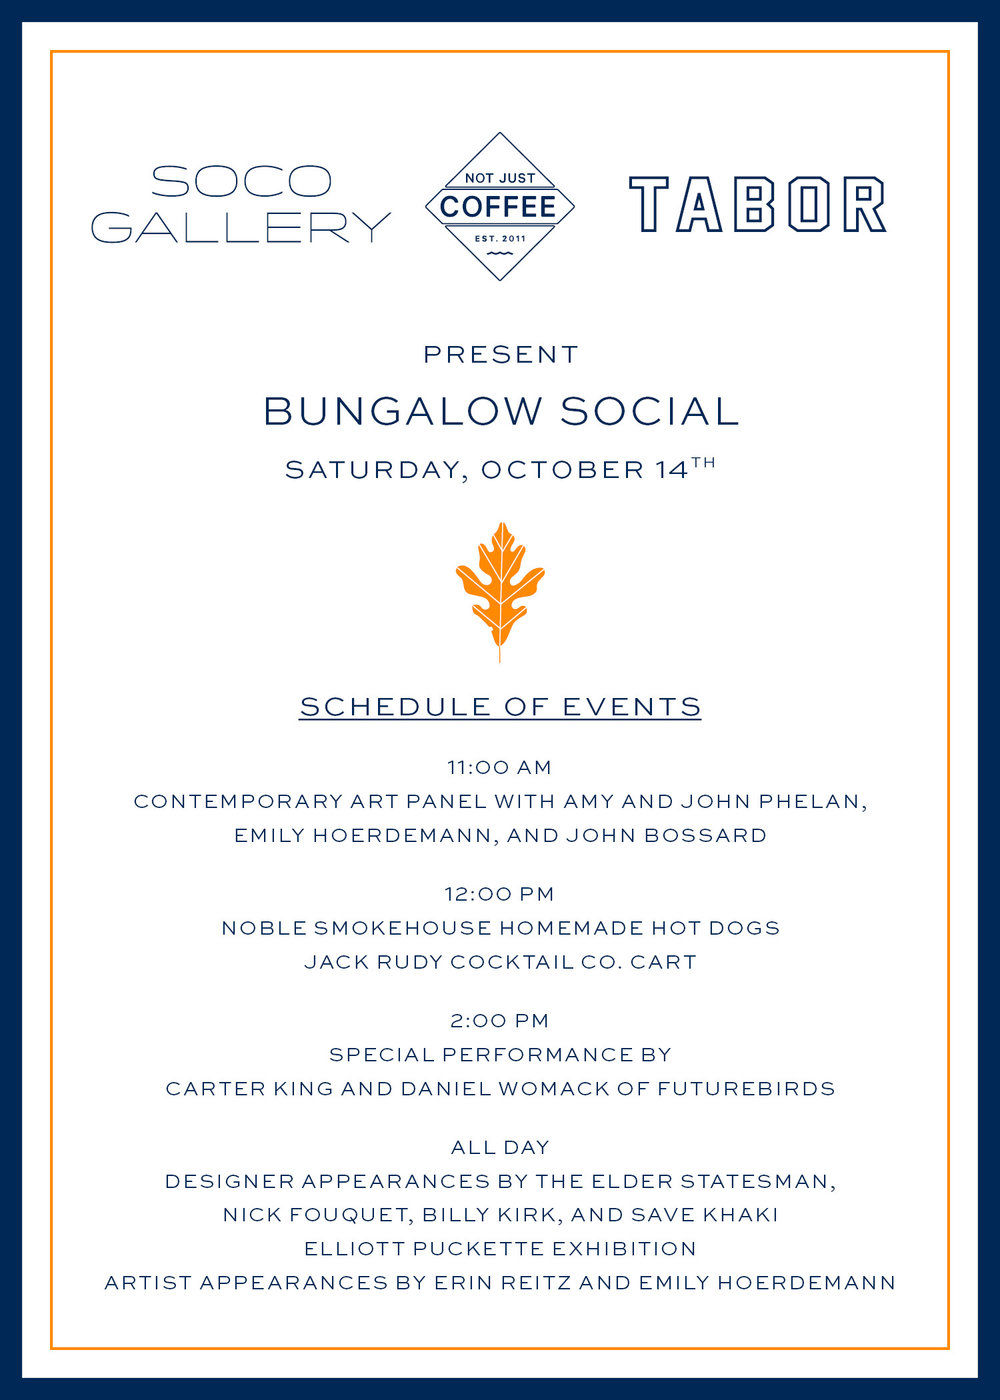 2017 Bungalow Social Itinerary.jpg